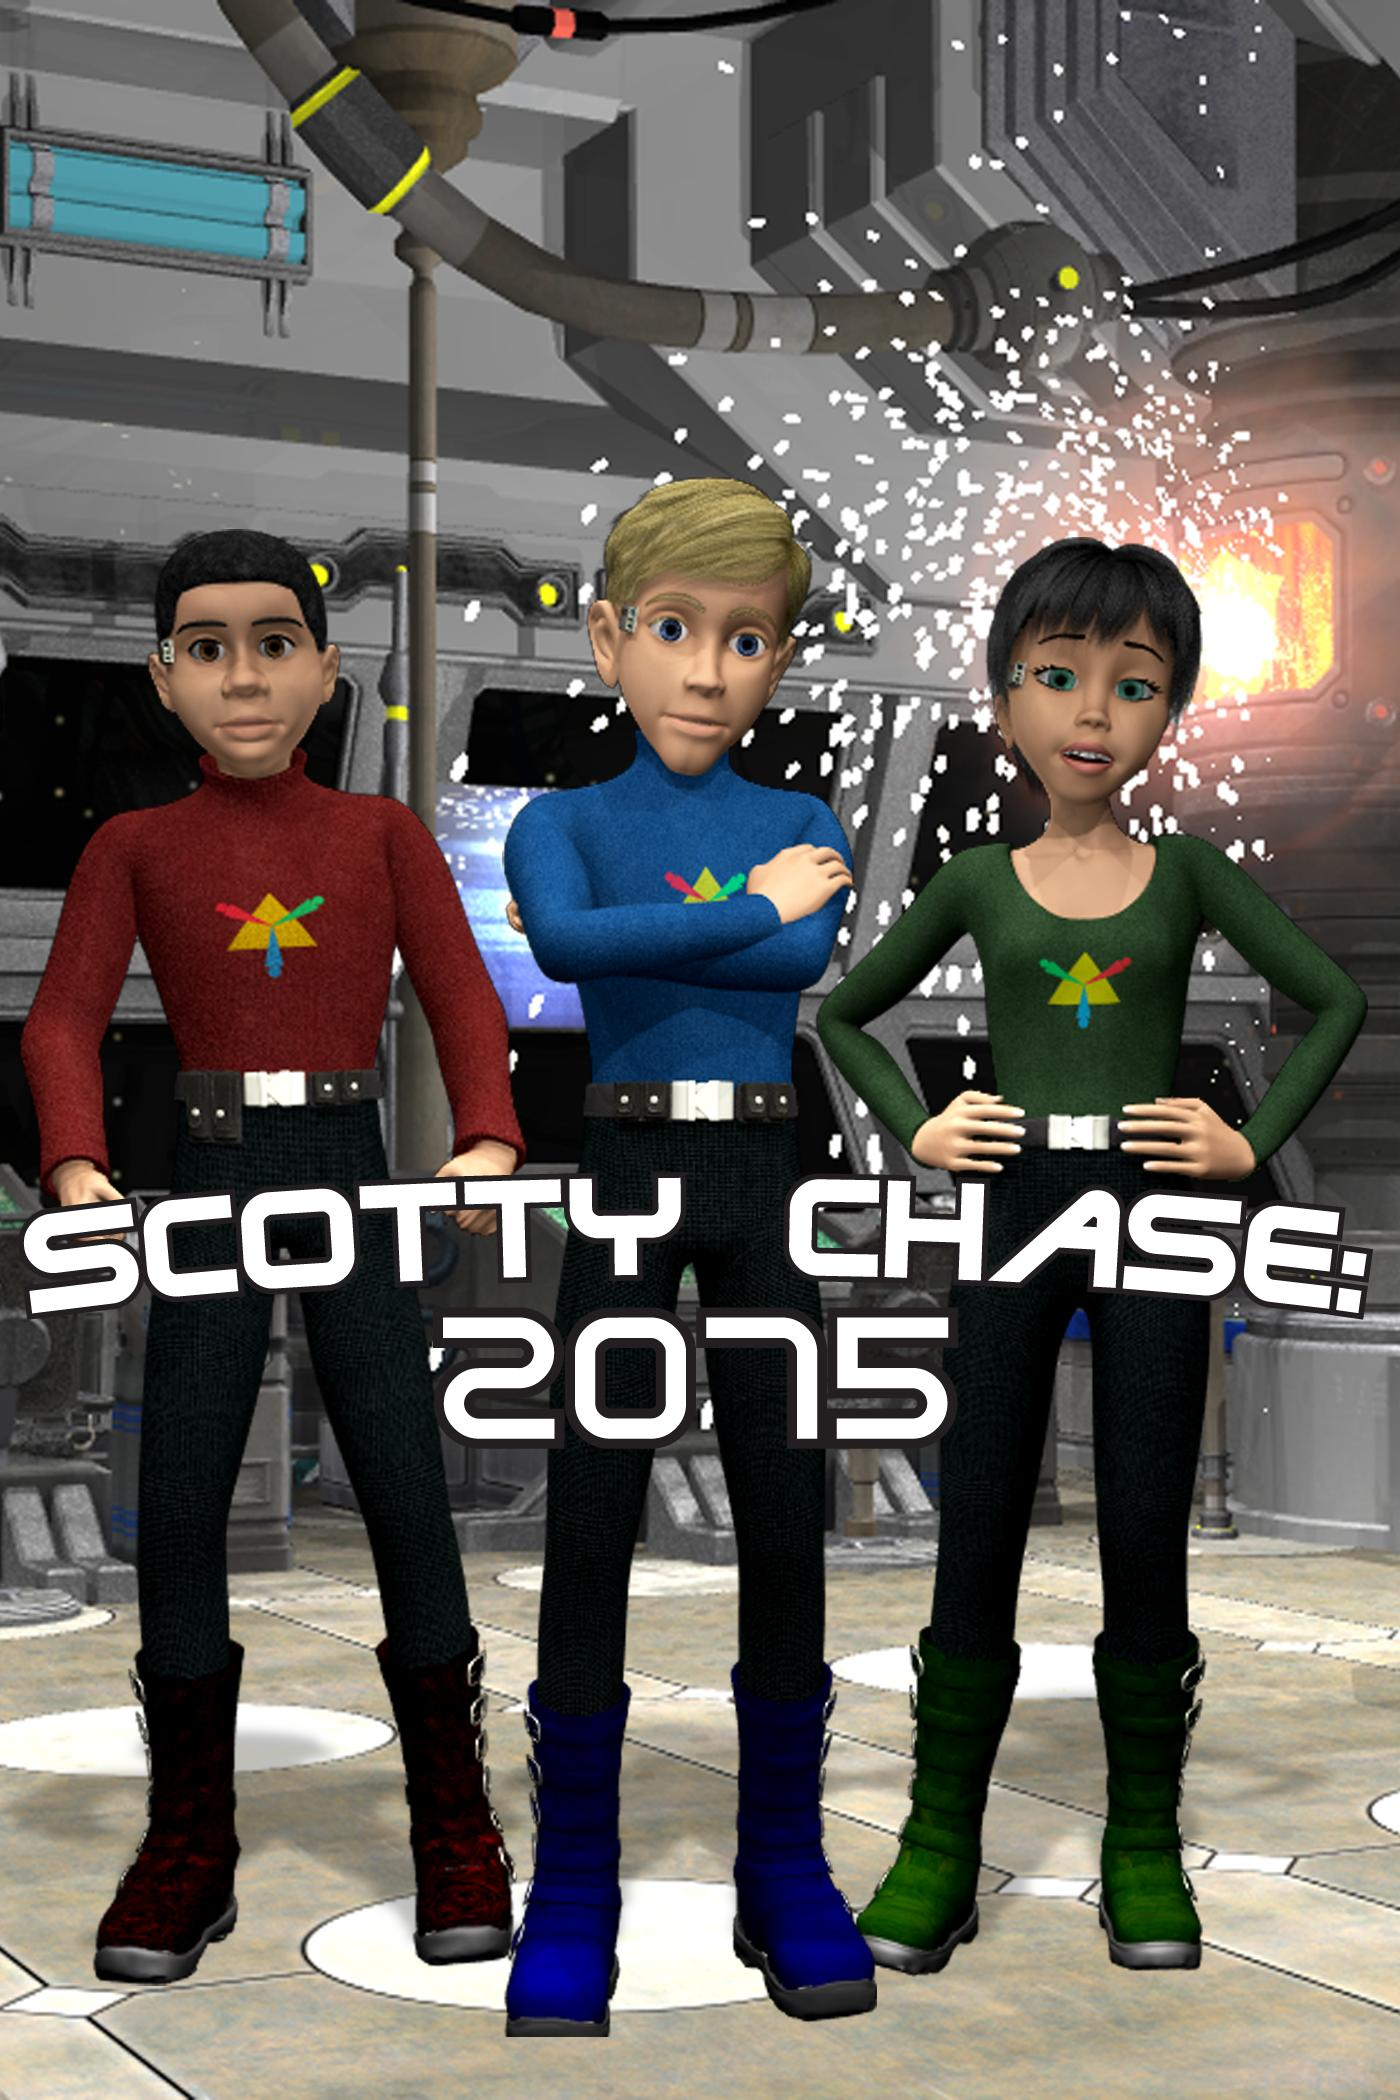 Scotty Chase: 2075